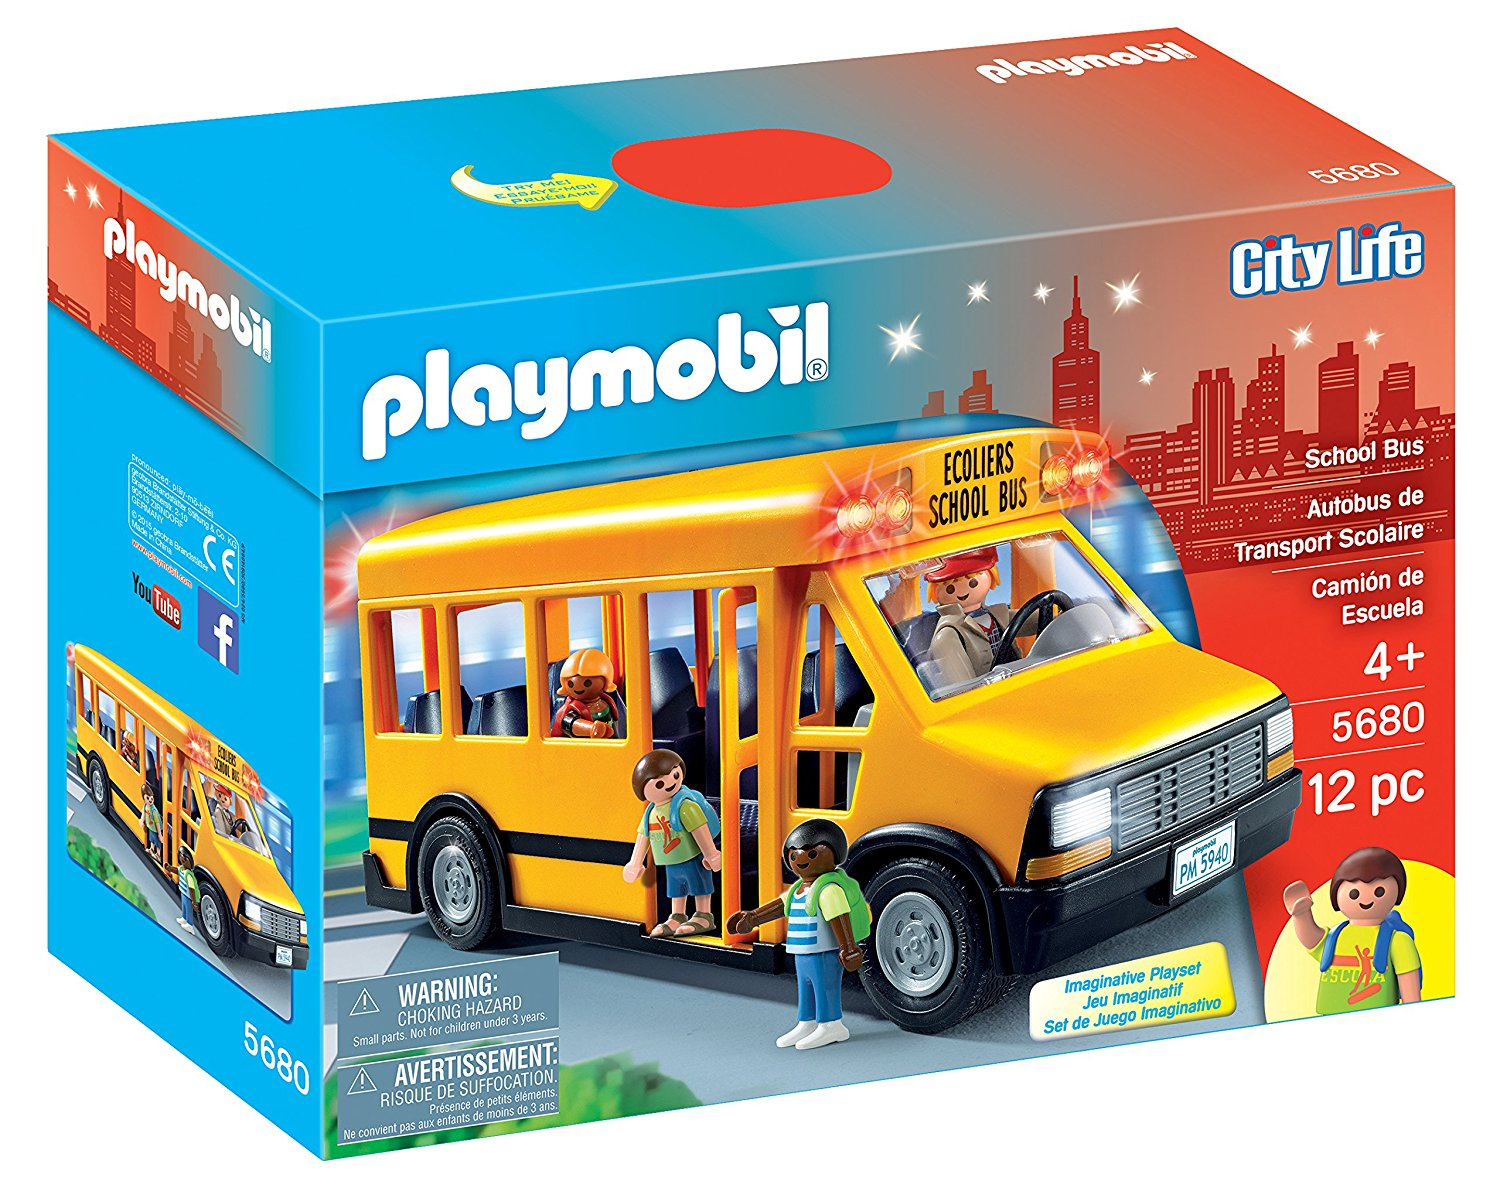 Playmobil coupon code